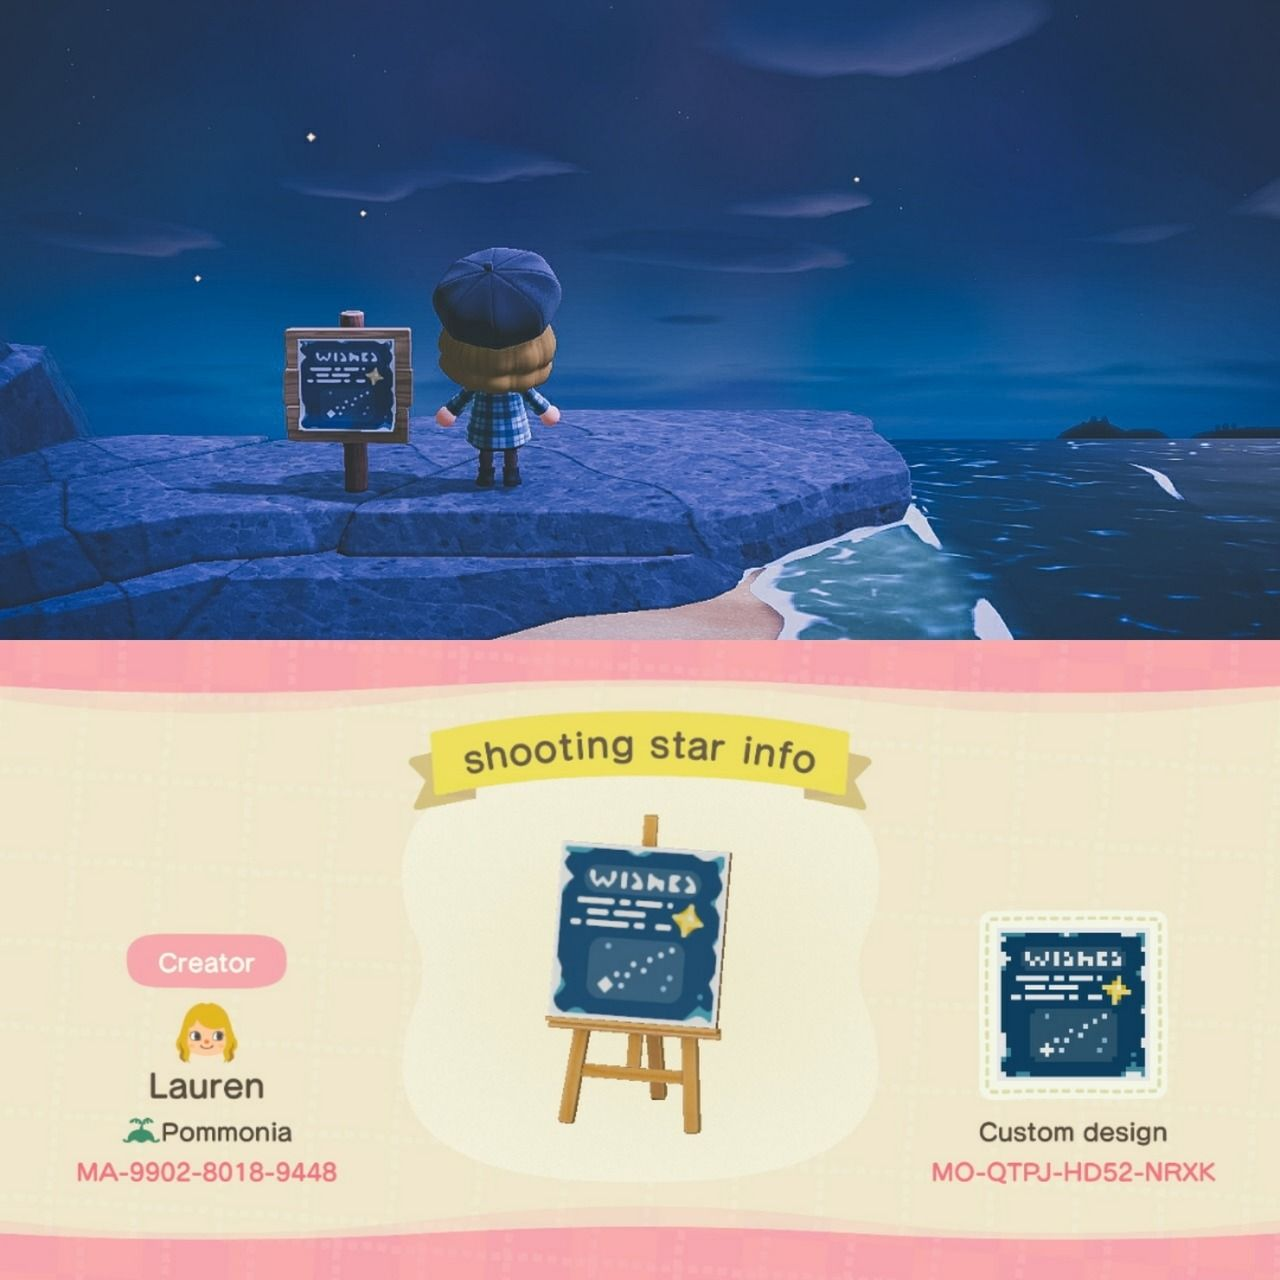 12++ How to catch shooting stars animal crossing ideas